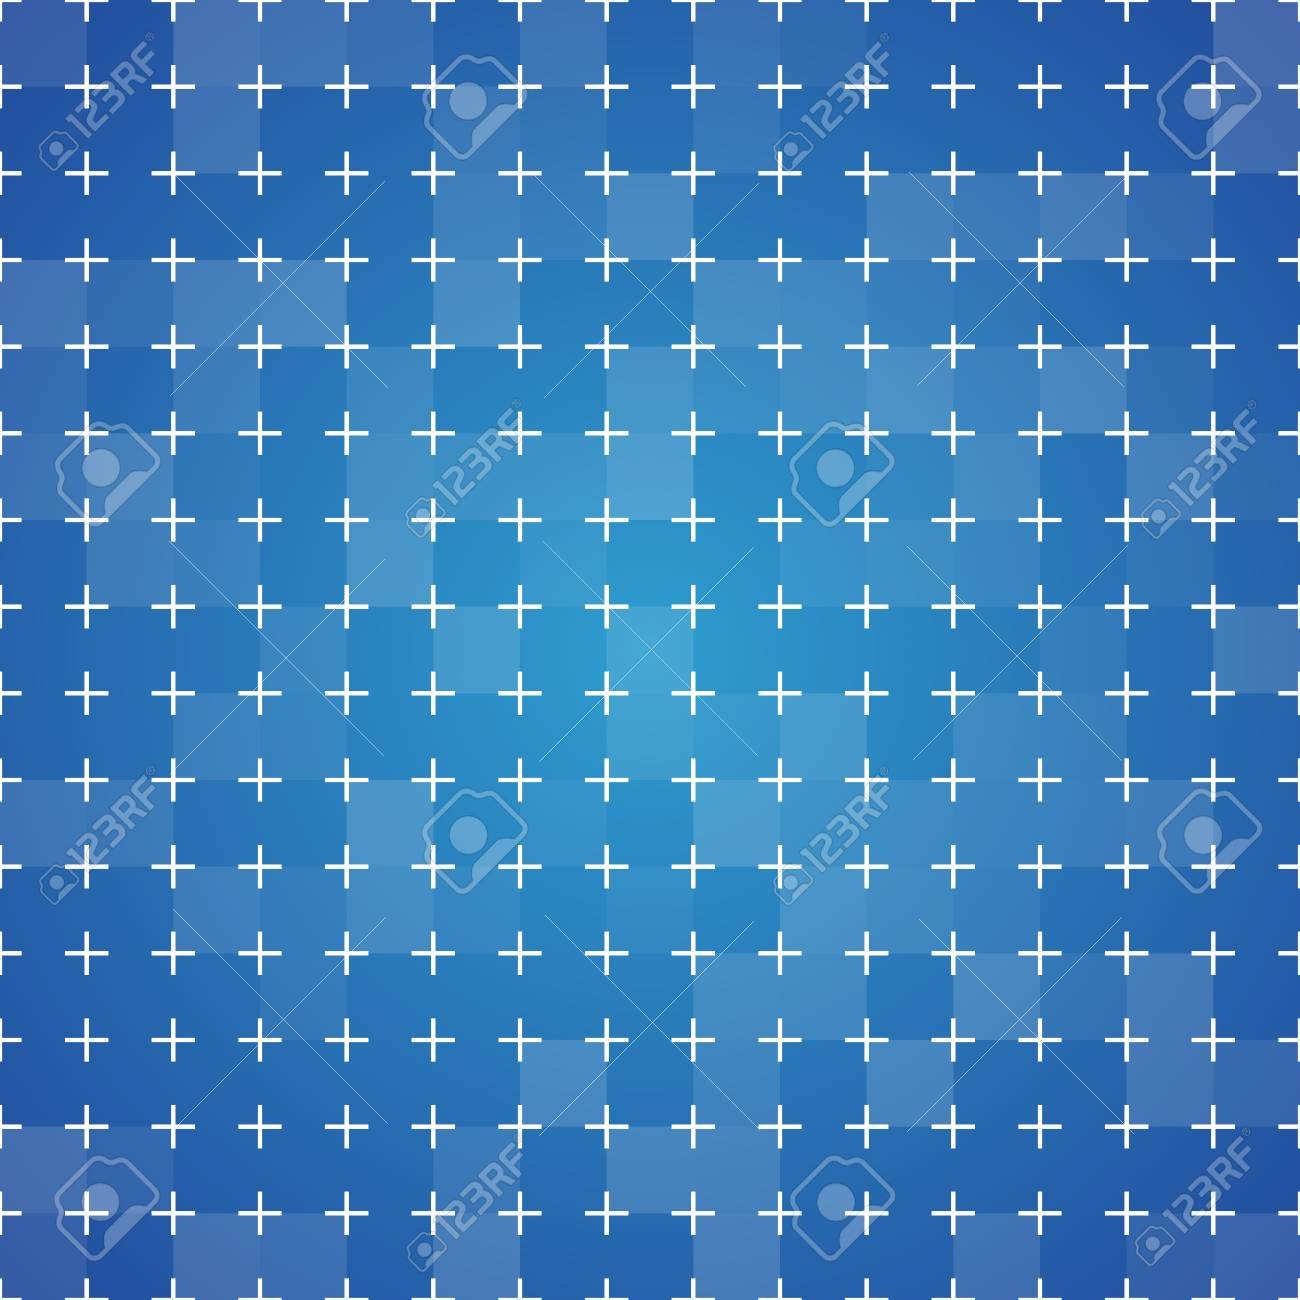 Blueprint background with cross marking grid vintage colorful blueprint background with cross marking grid vintage colorful texture vector illustration stock malvernweather Images